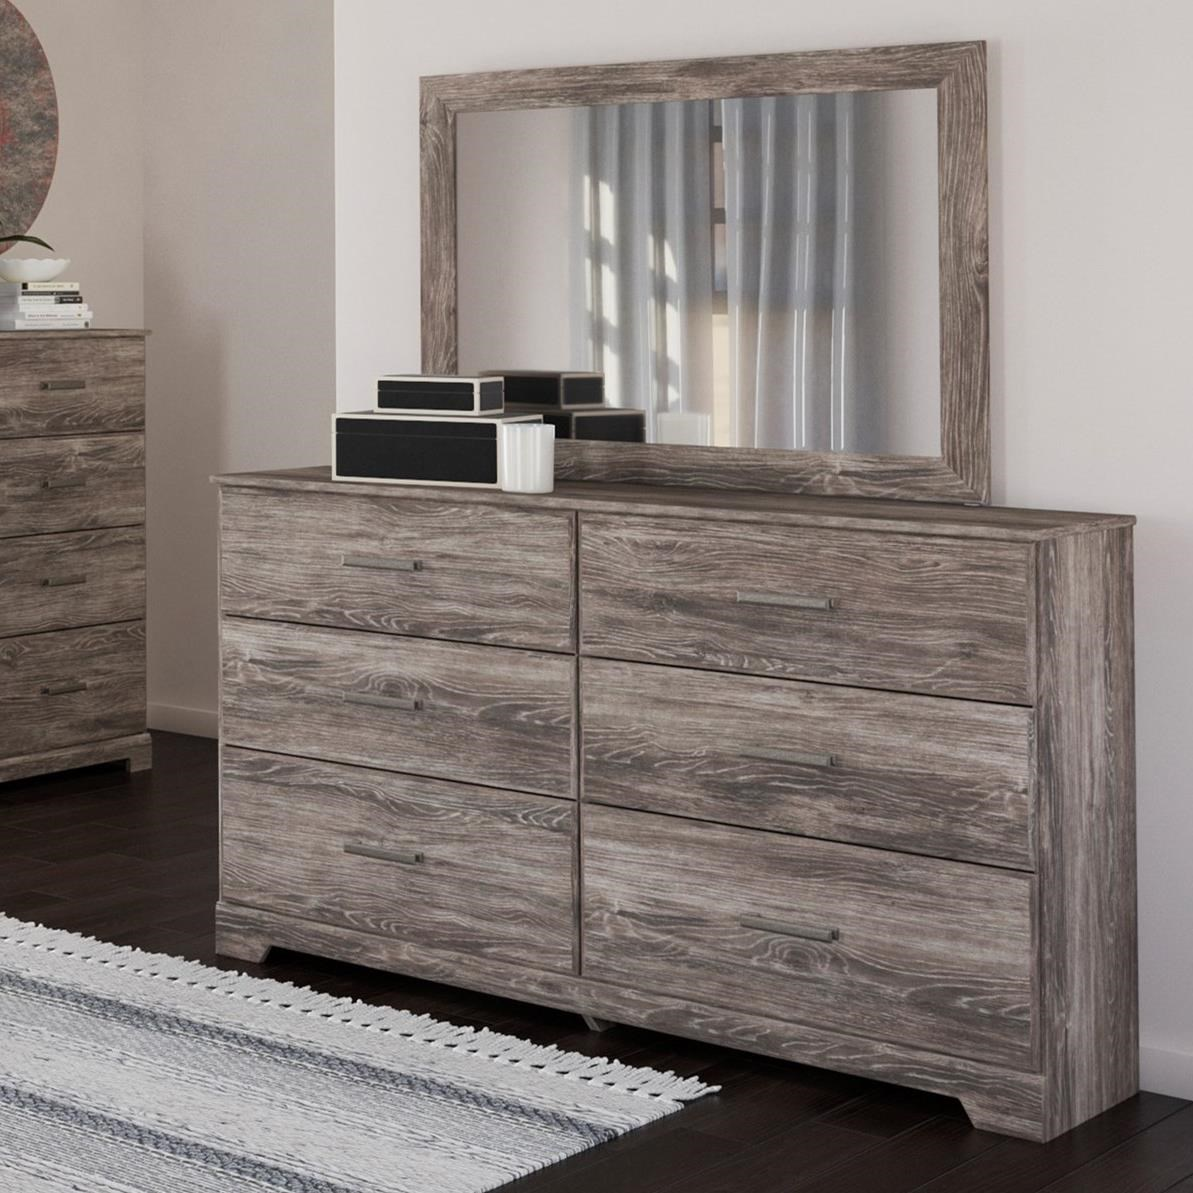 Ralinski Dresser & Bedroom Mirror by Signature Design by Ashley at Zak's Warehouse Clearance Center